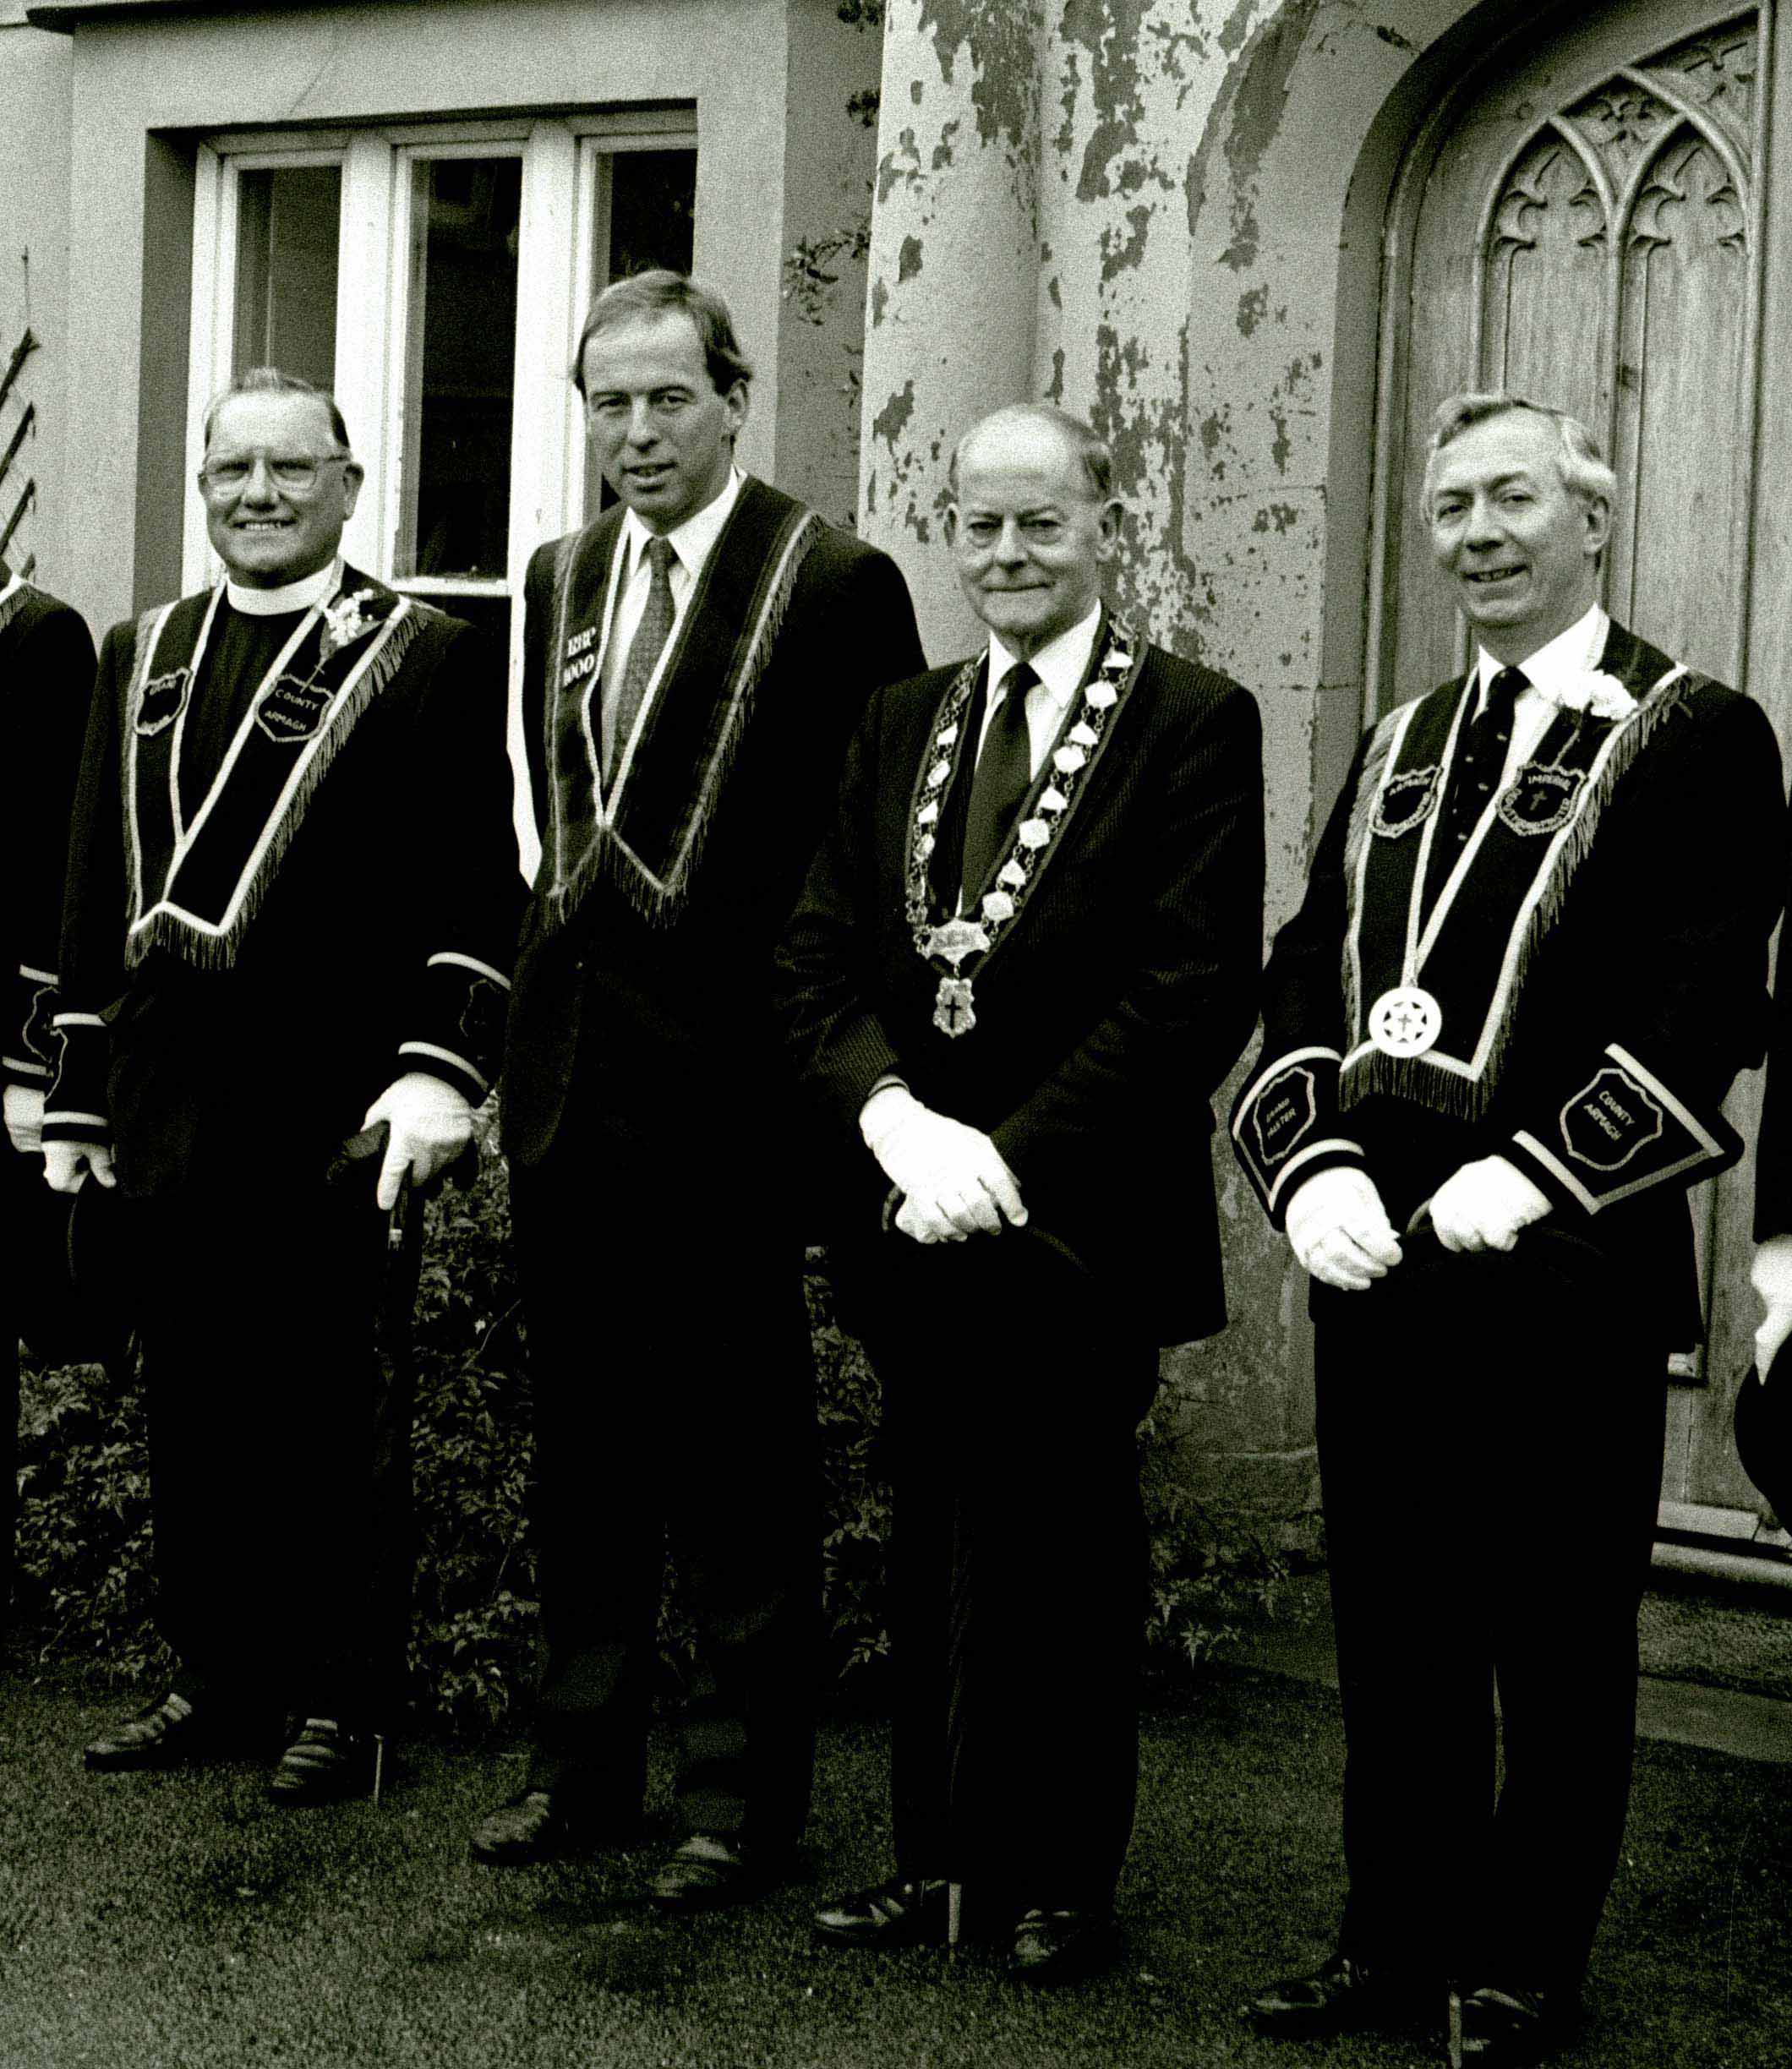 Rev Percy Patterson, Sir Knight Alfred Buller, (Host), Soverign Grand Master James Molyneaux and Sir Knight Sam Gardiner.